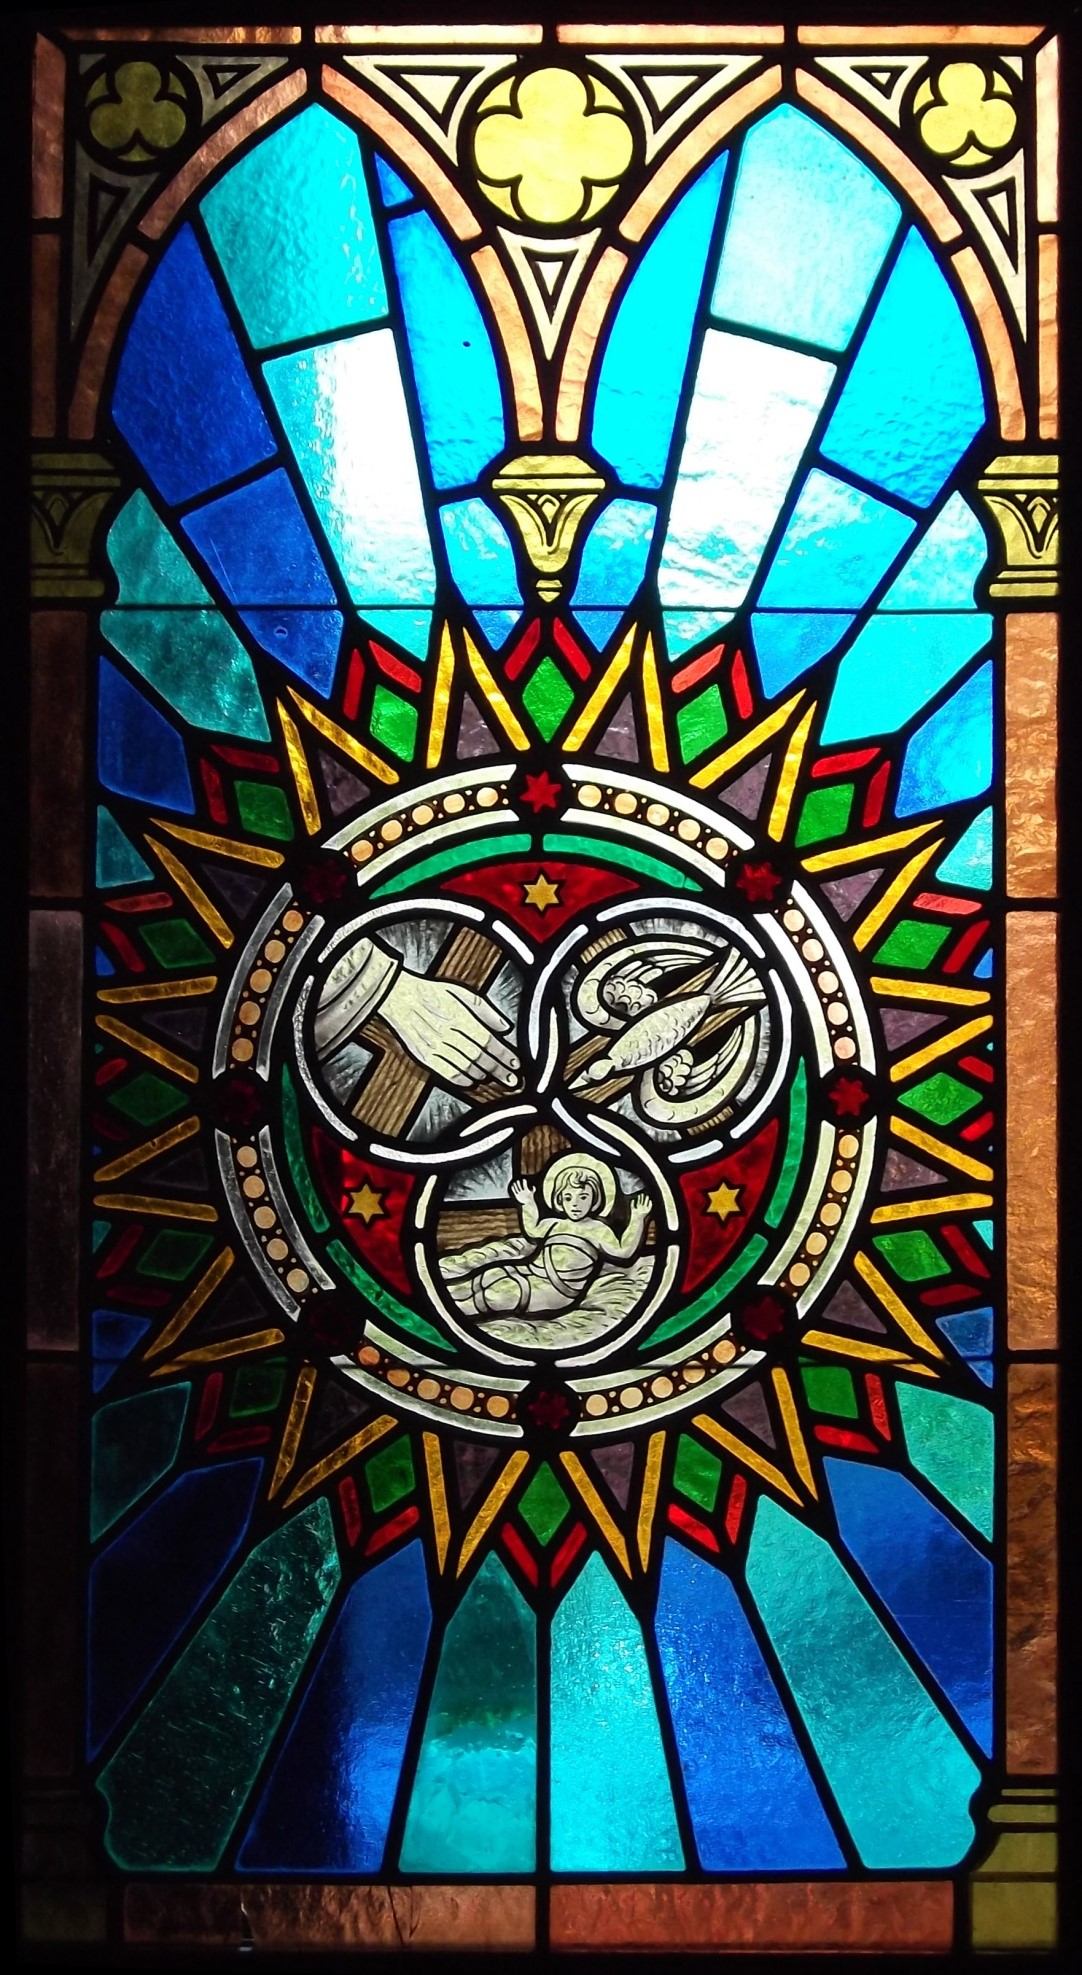 Stained glass window featuring three interlocked circles, with 